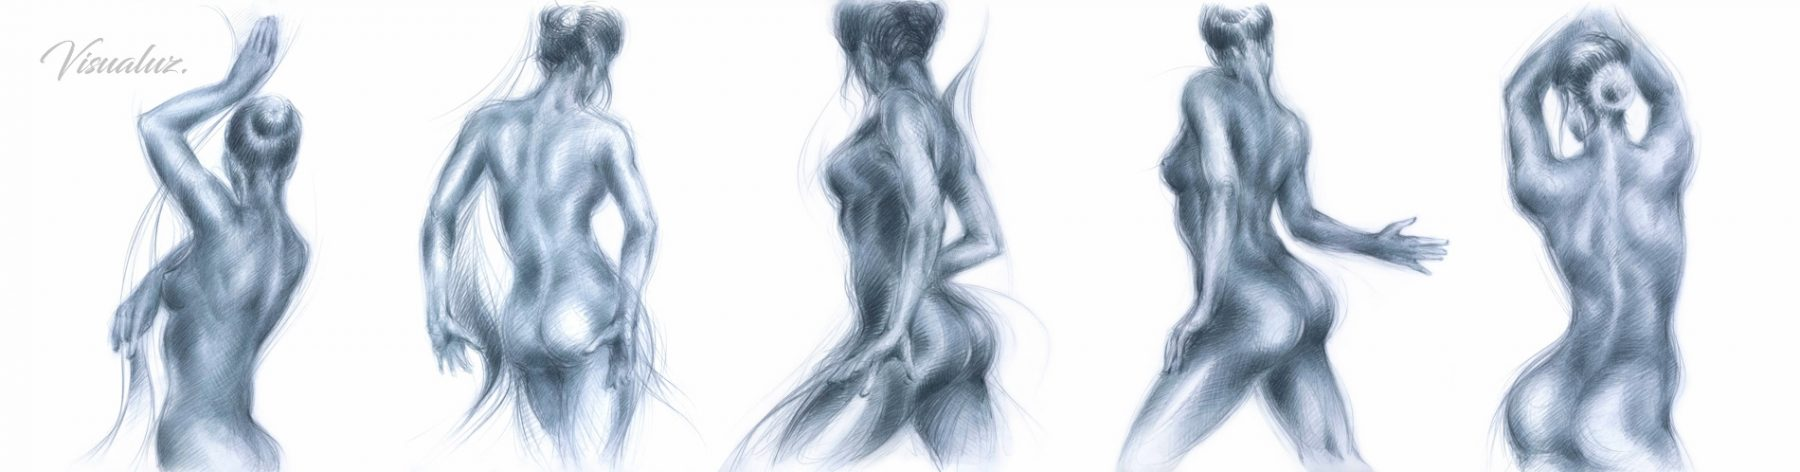 Flowing movement of blue dancers, drawings, polychromos on paper